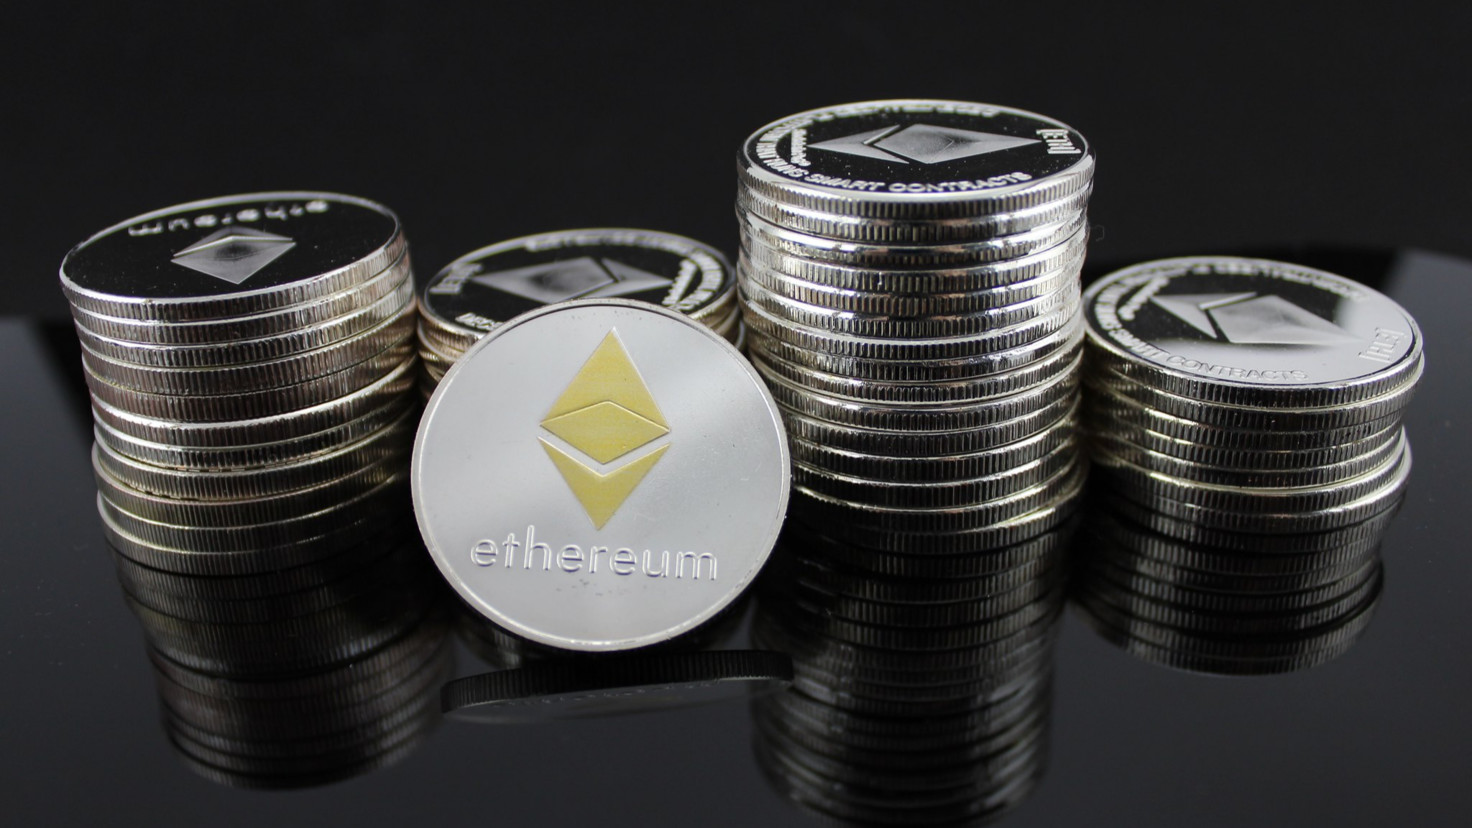 Ether and Ethereum: what is the difference?